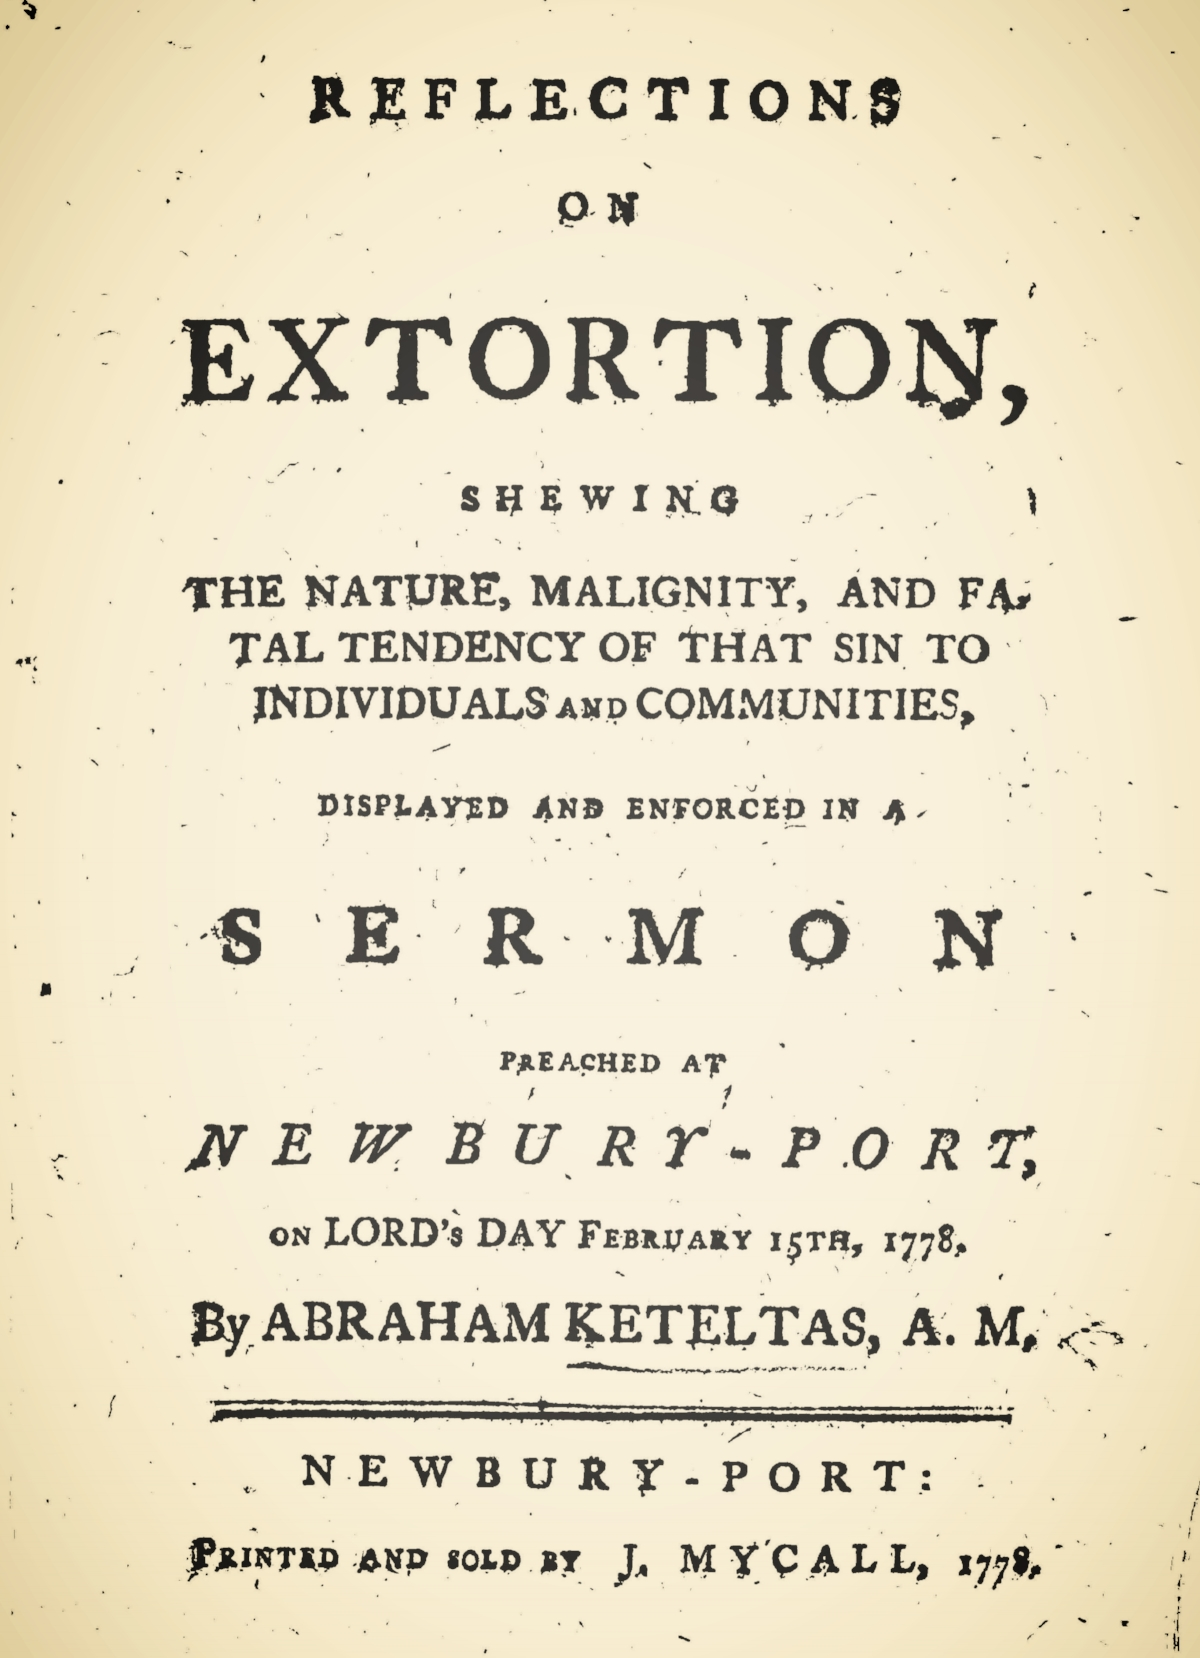 Keteltas, Abraham, Reflections on Extortion Title Page.jpg